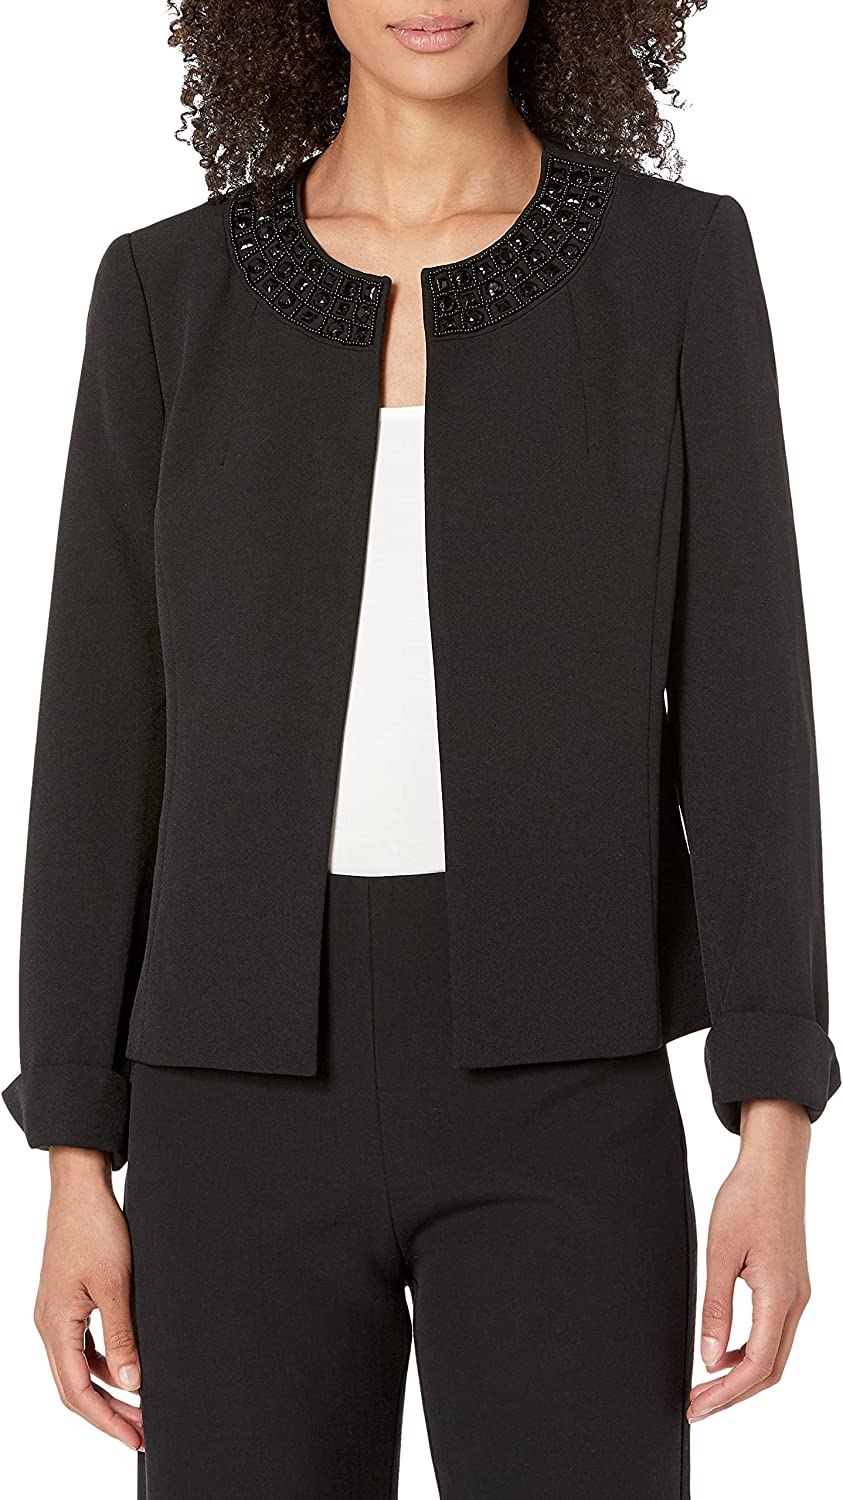 High material Kasper Women's Stretch Crepe Flyaway Our shop OFFers the best service Col with Embellished Jacket